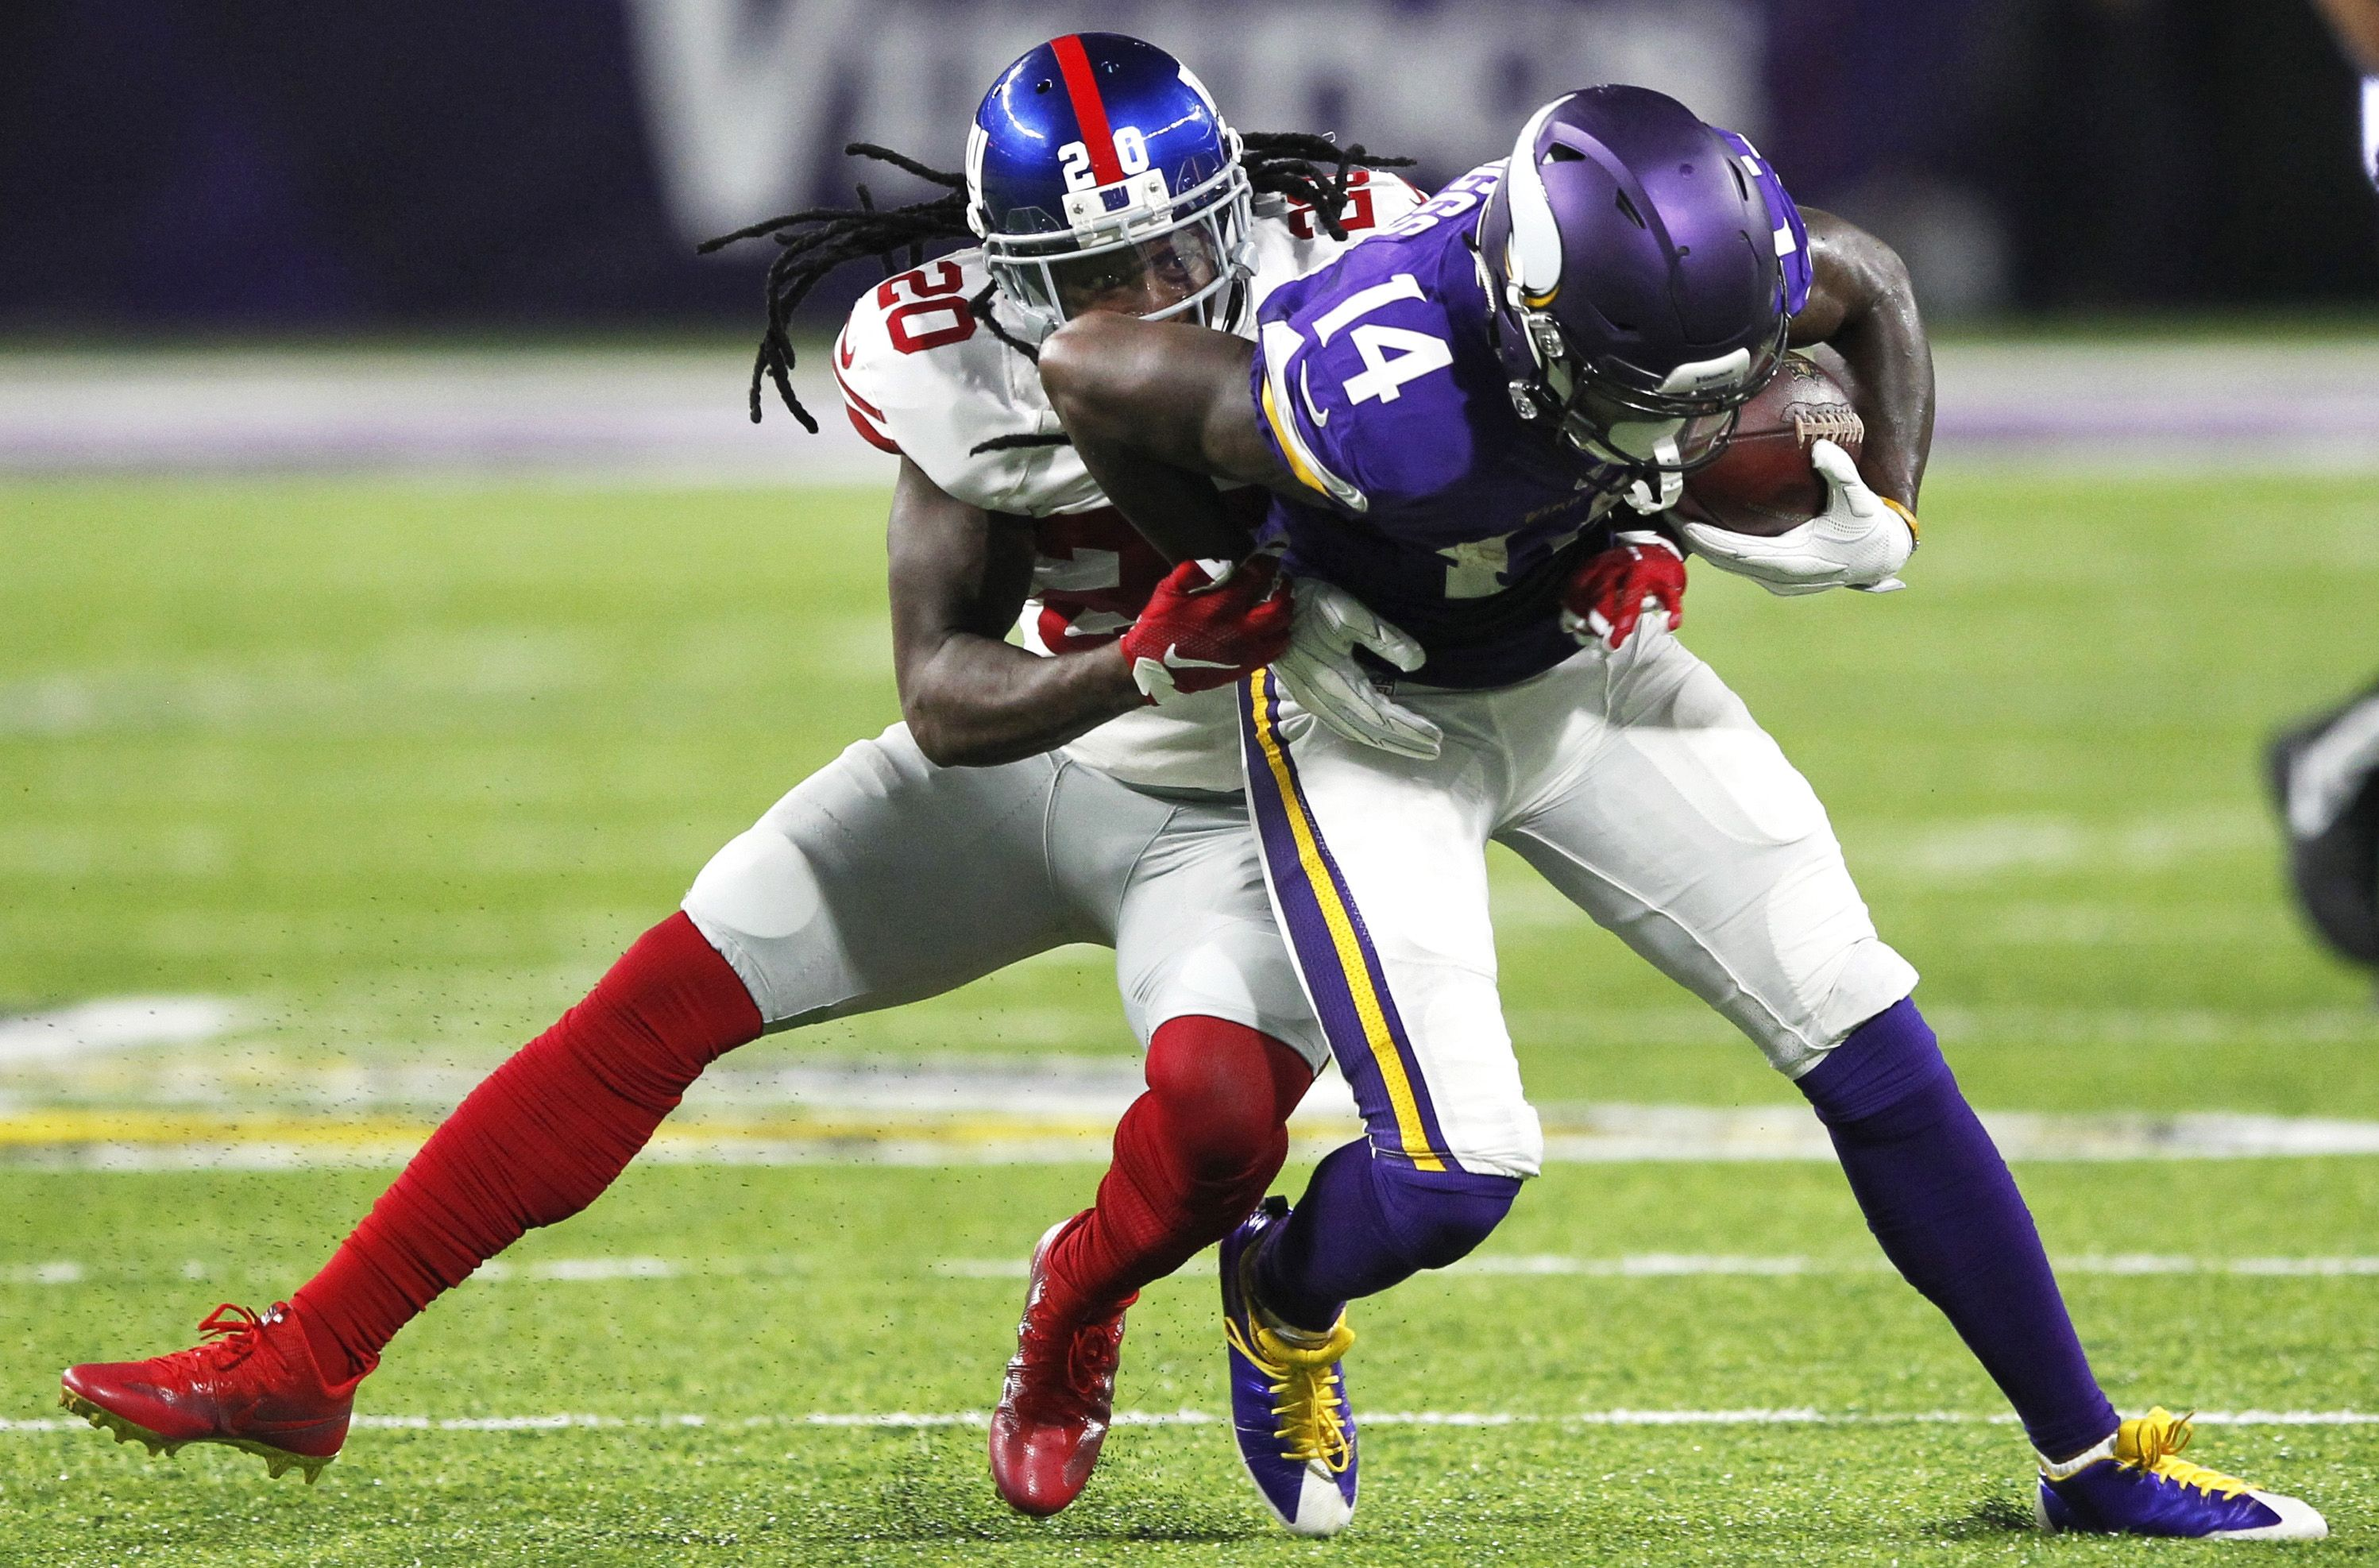 Vikings: Stefon Diggs doubtful, Andre Smith out